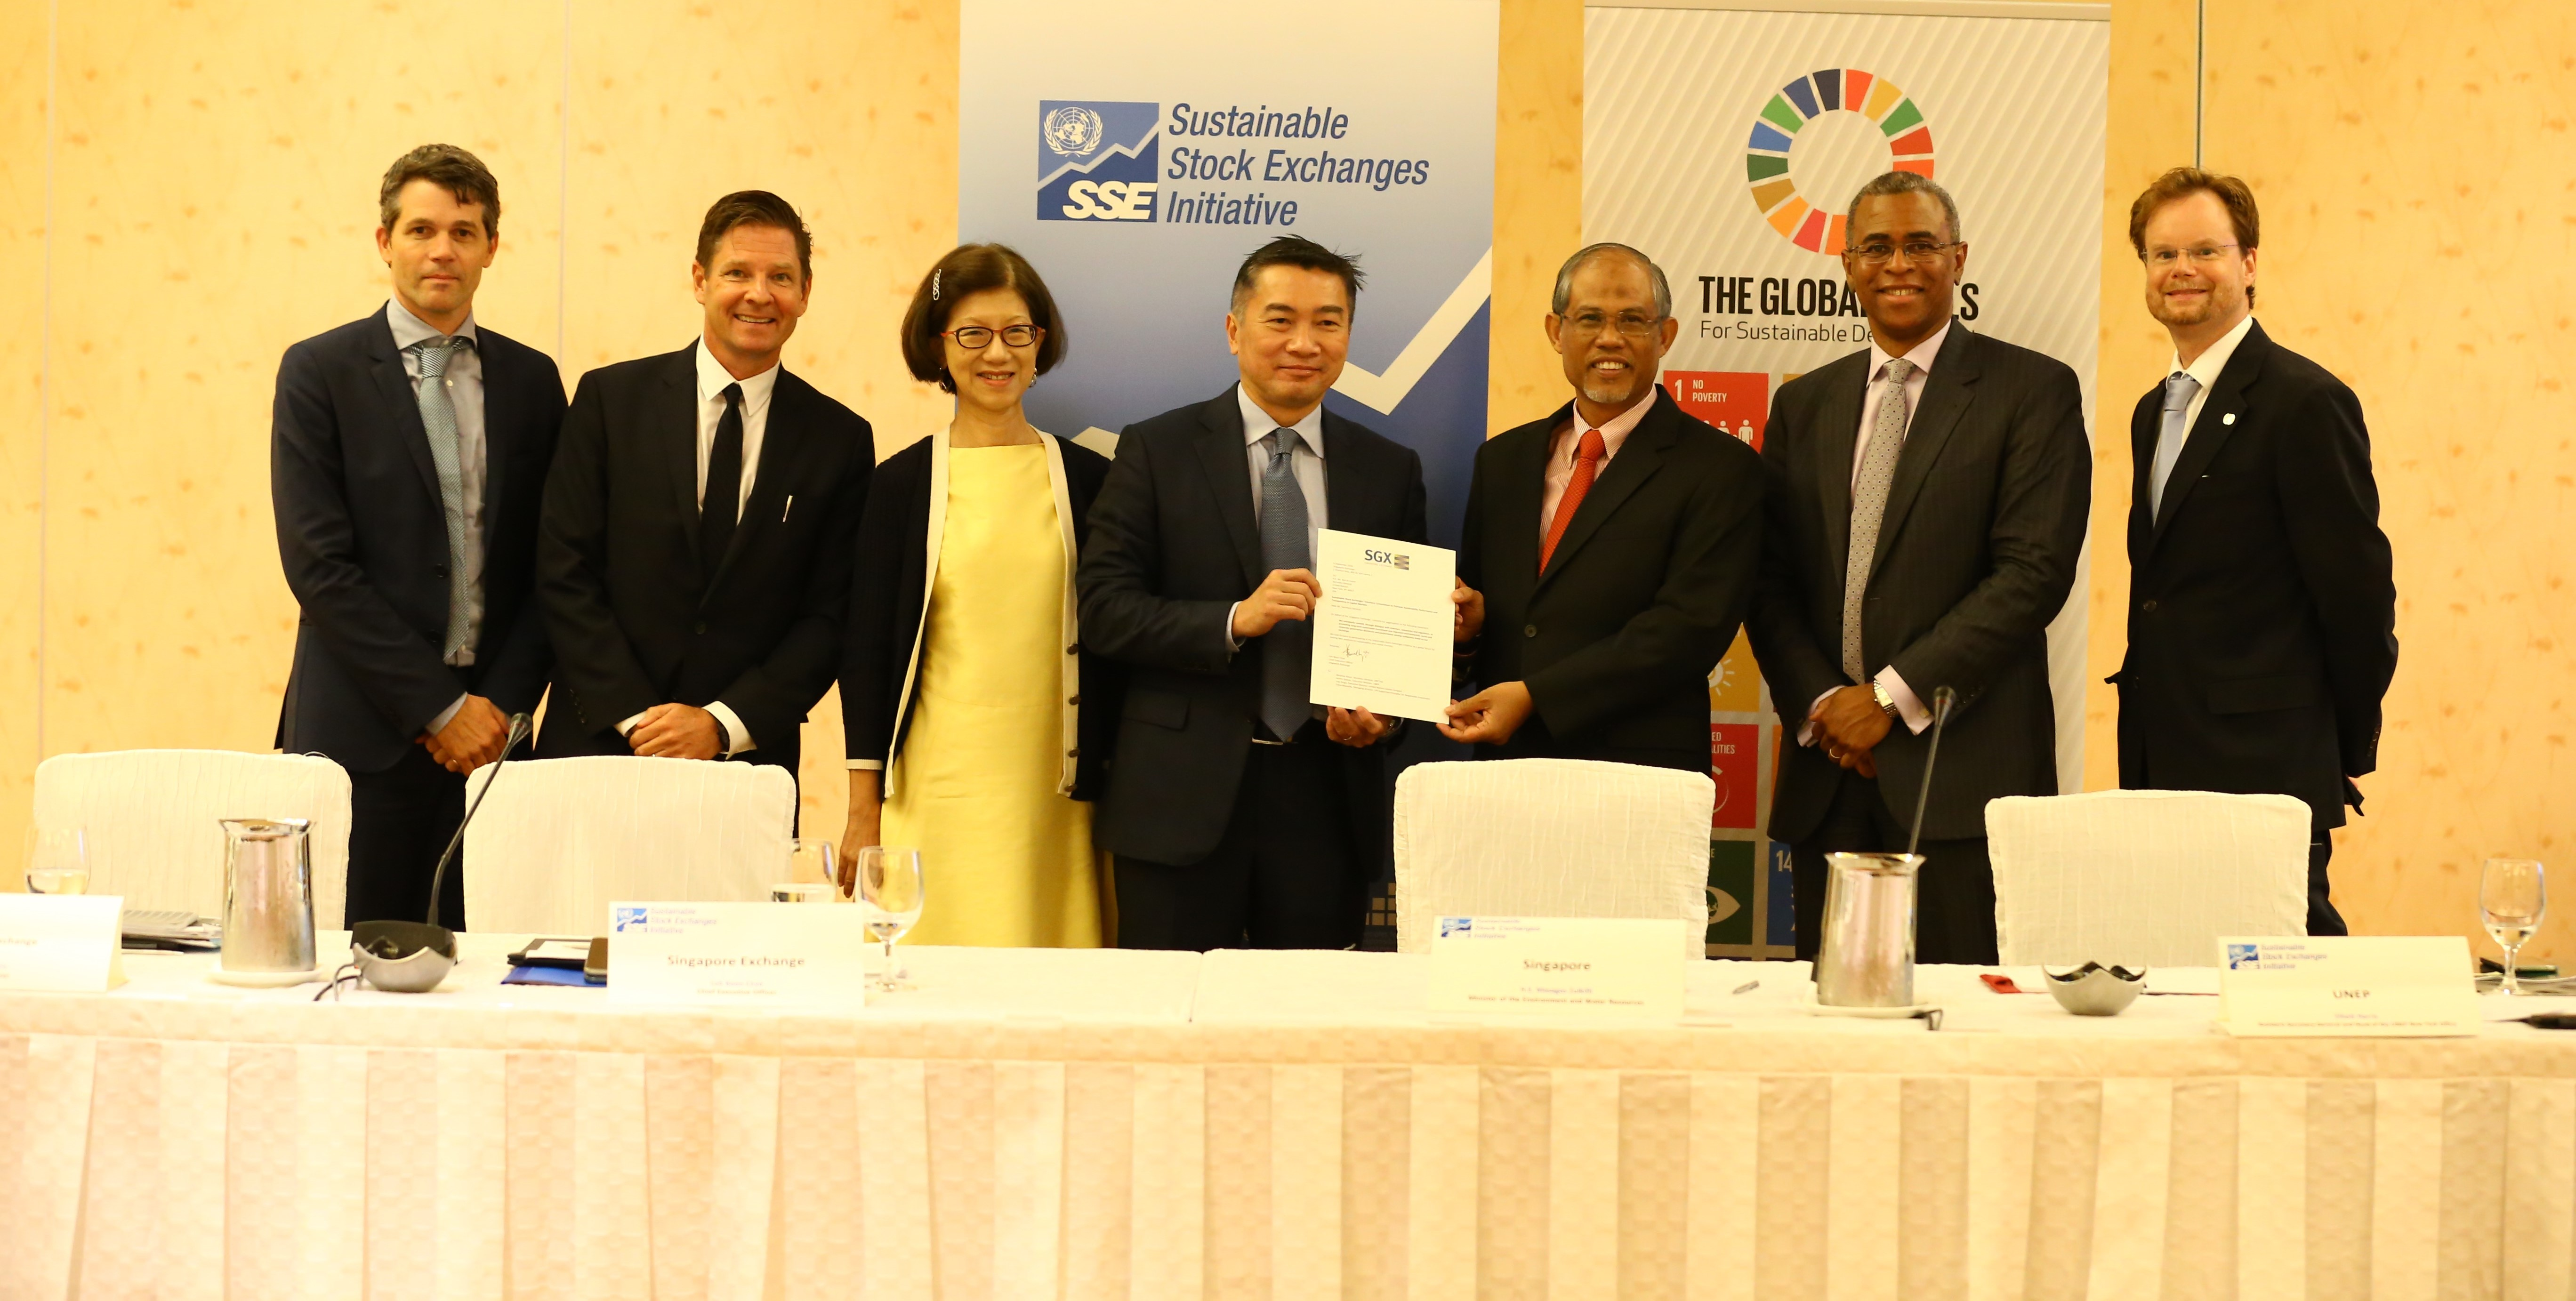 Singapore Exchange furthers its commitment to sustainability by joining United Nations initiative